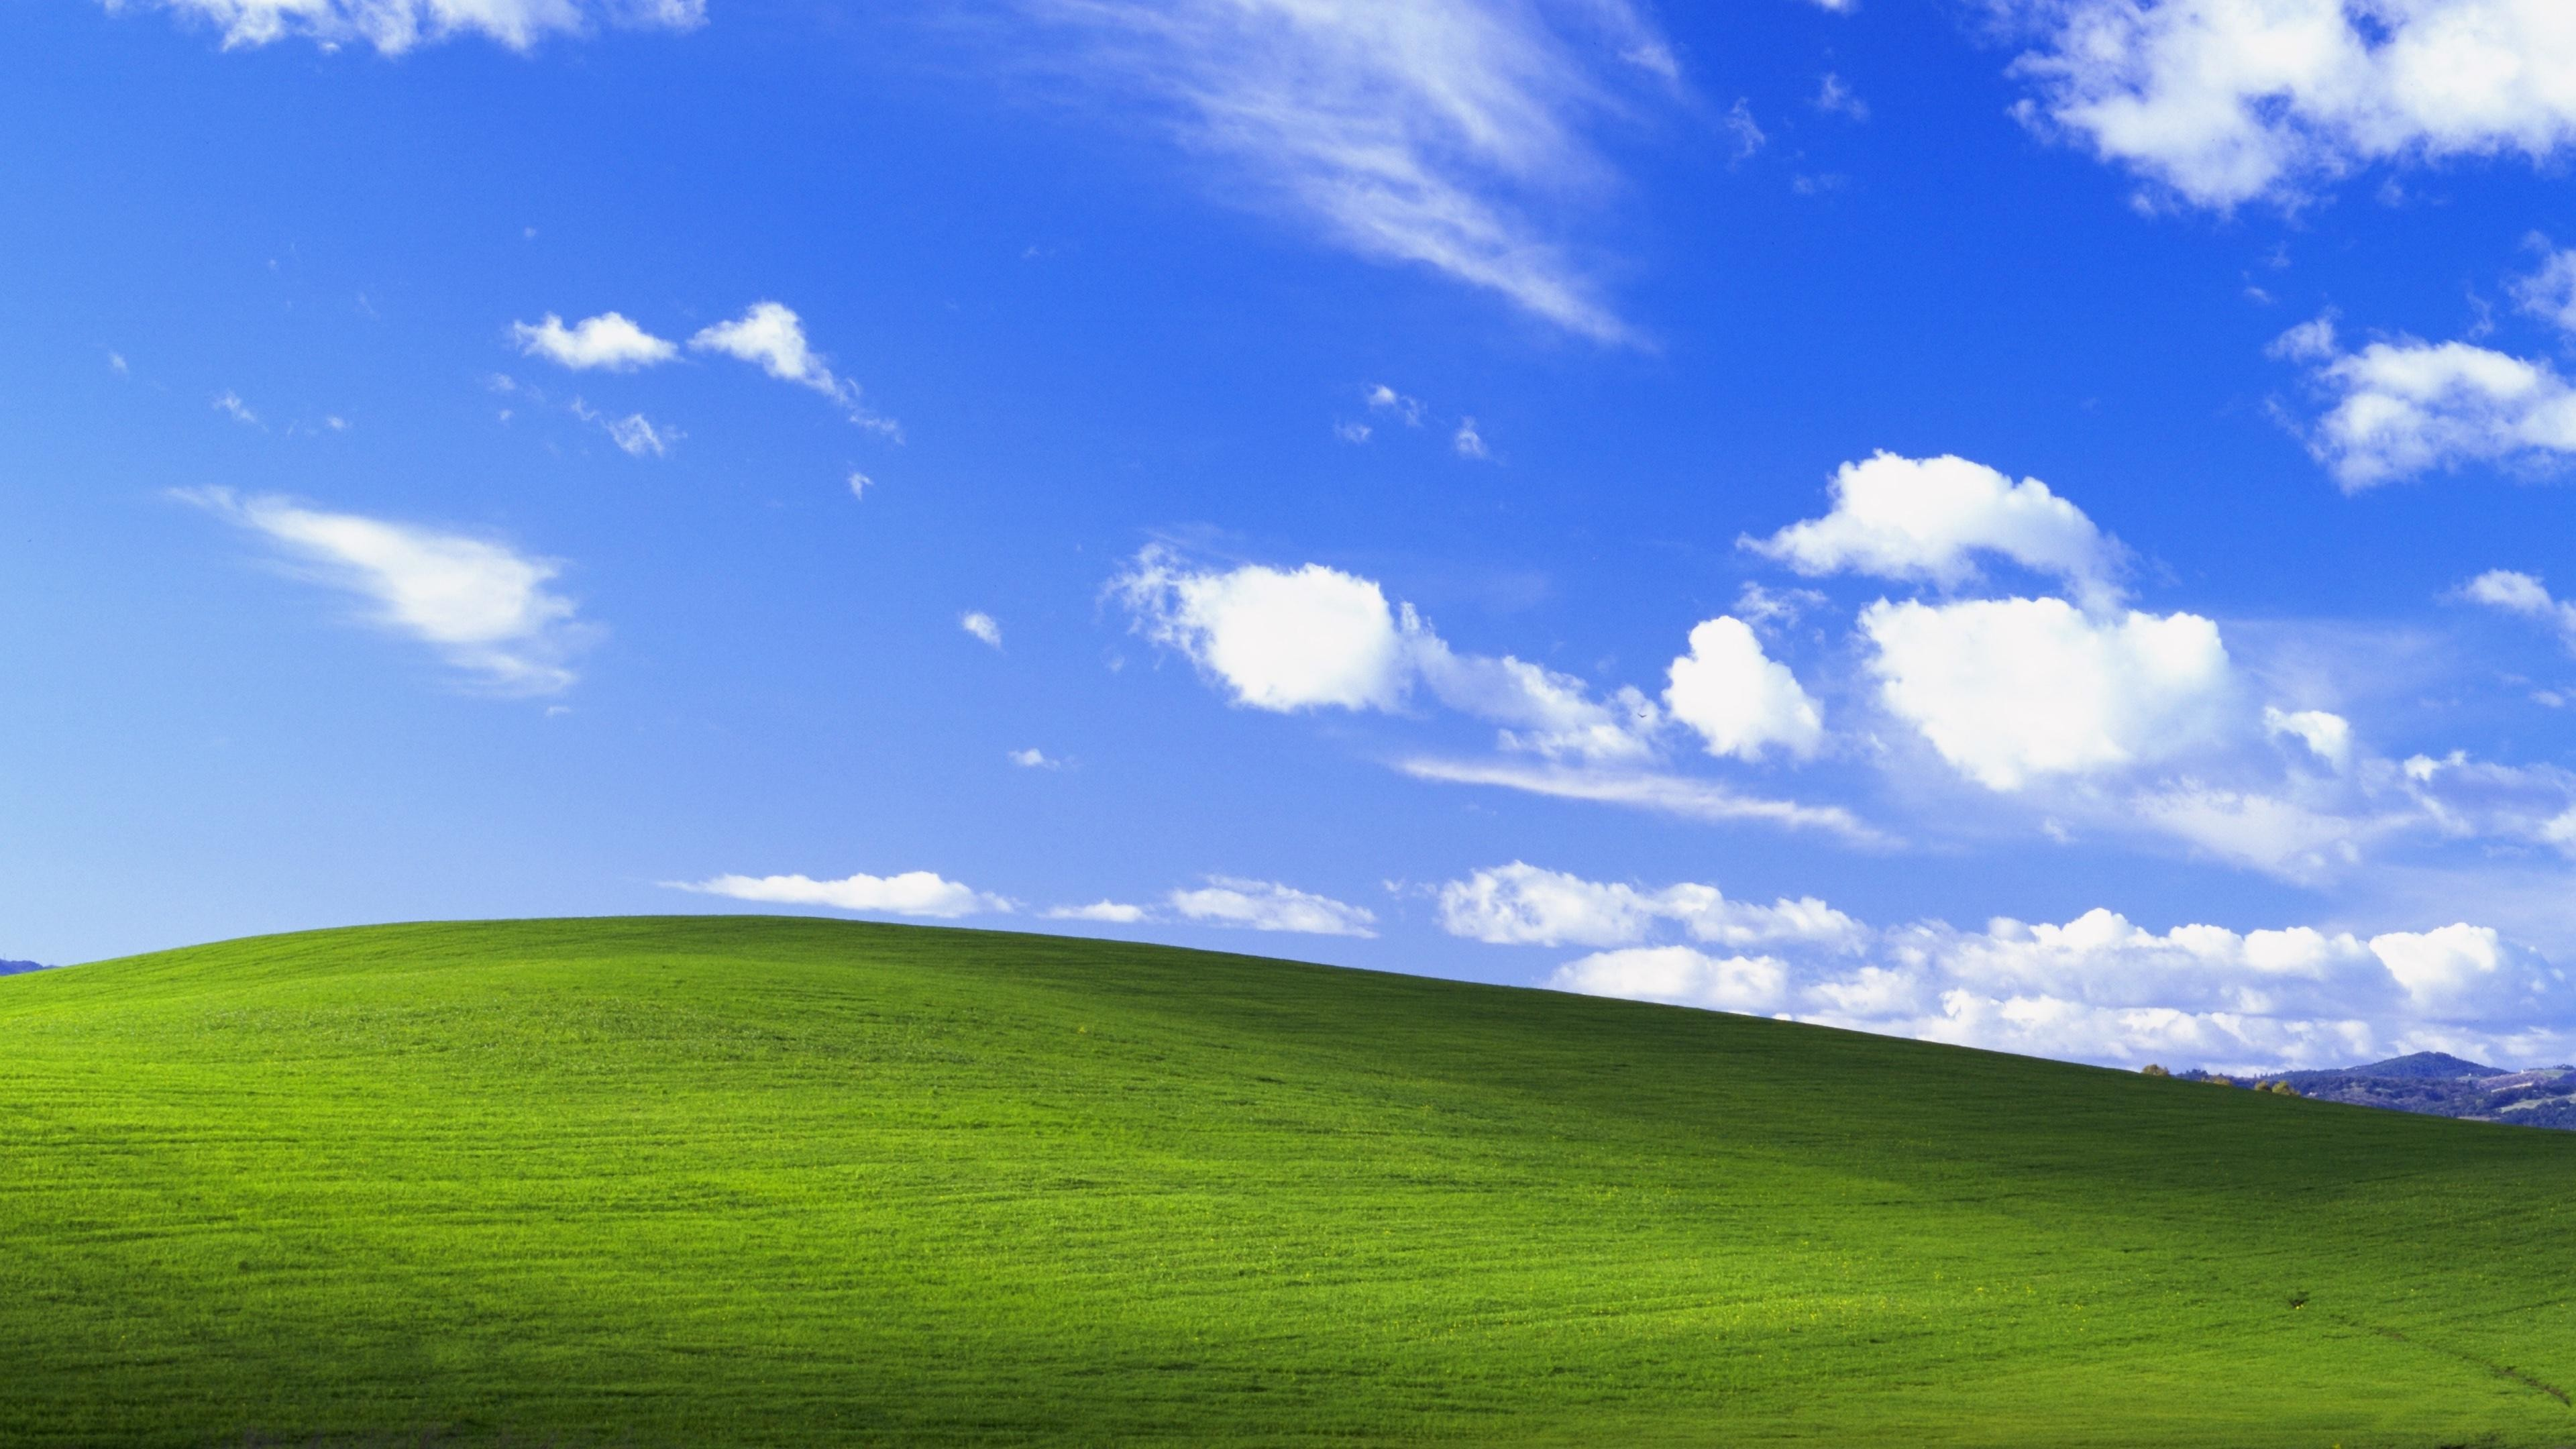 3840x2160 NostalgiaHere's the Windows XP wallpaper in glorious 4K res.